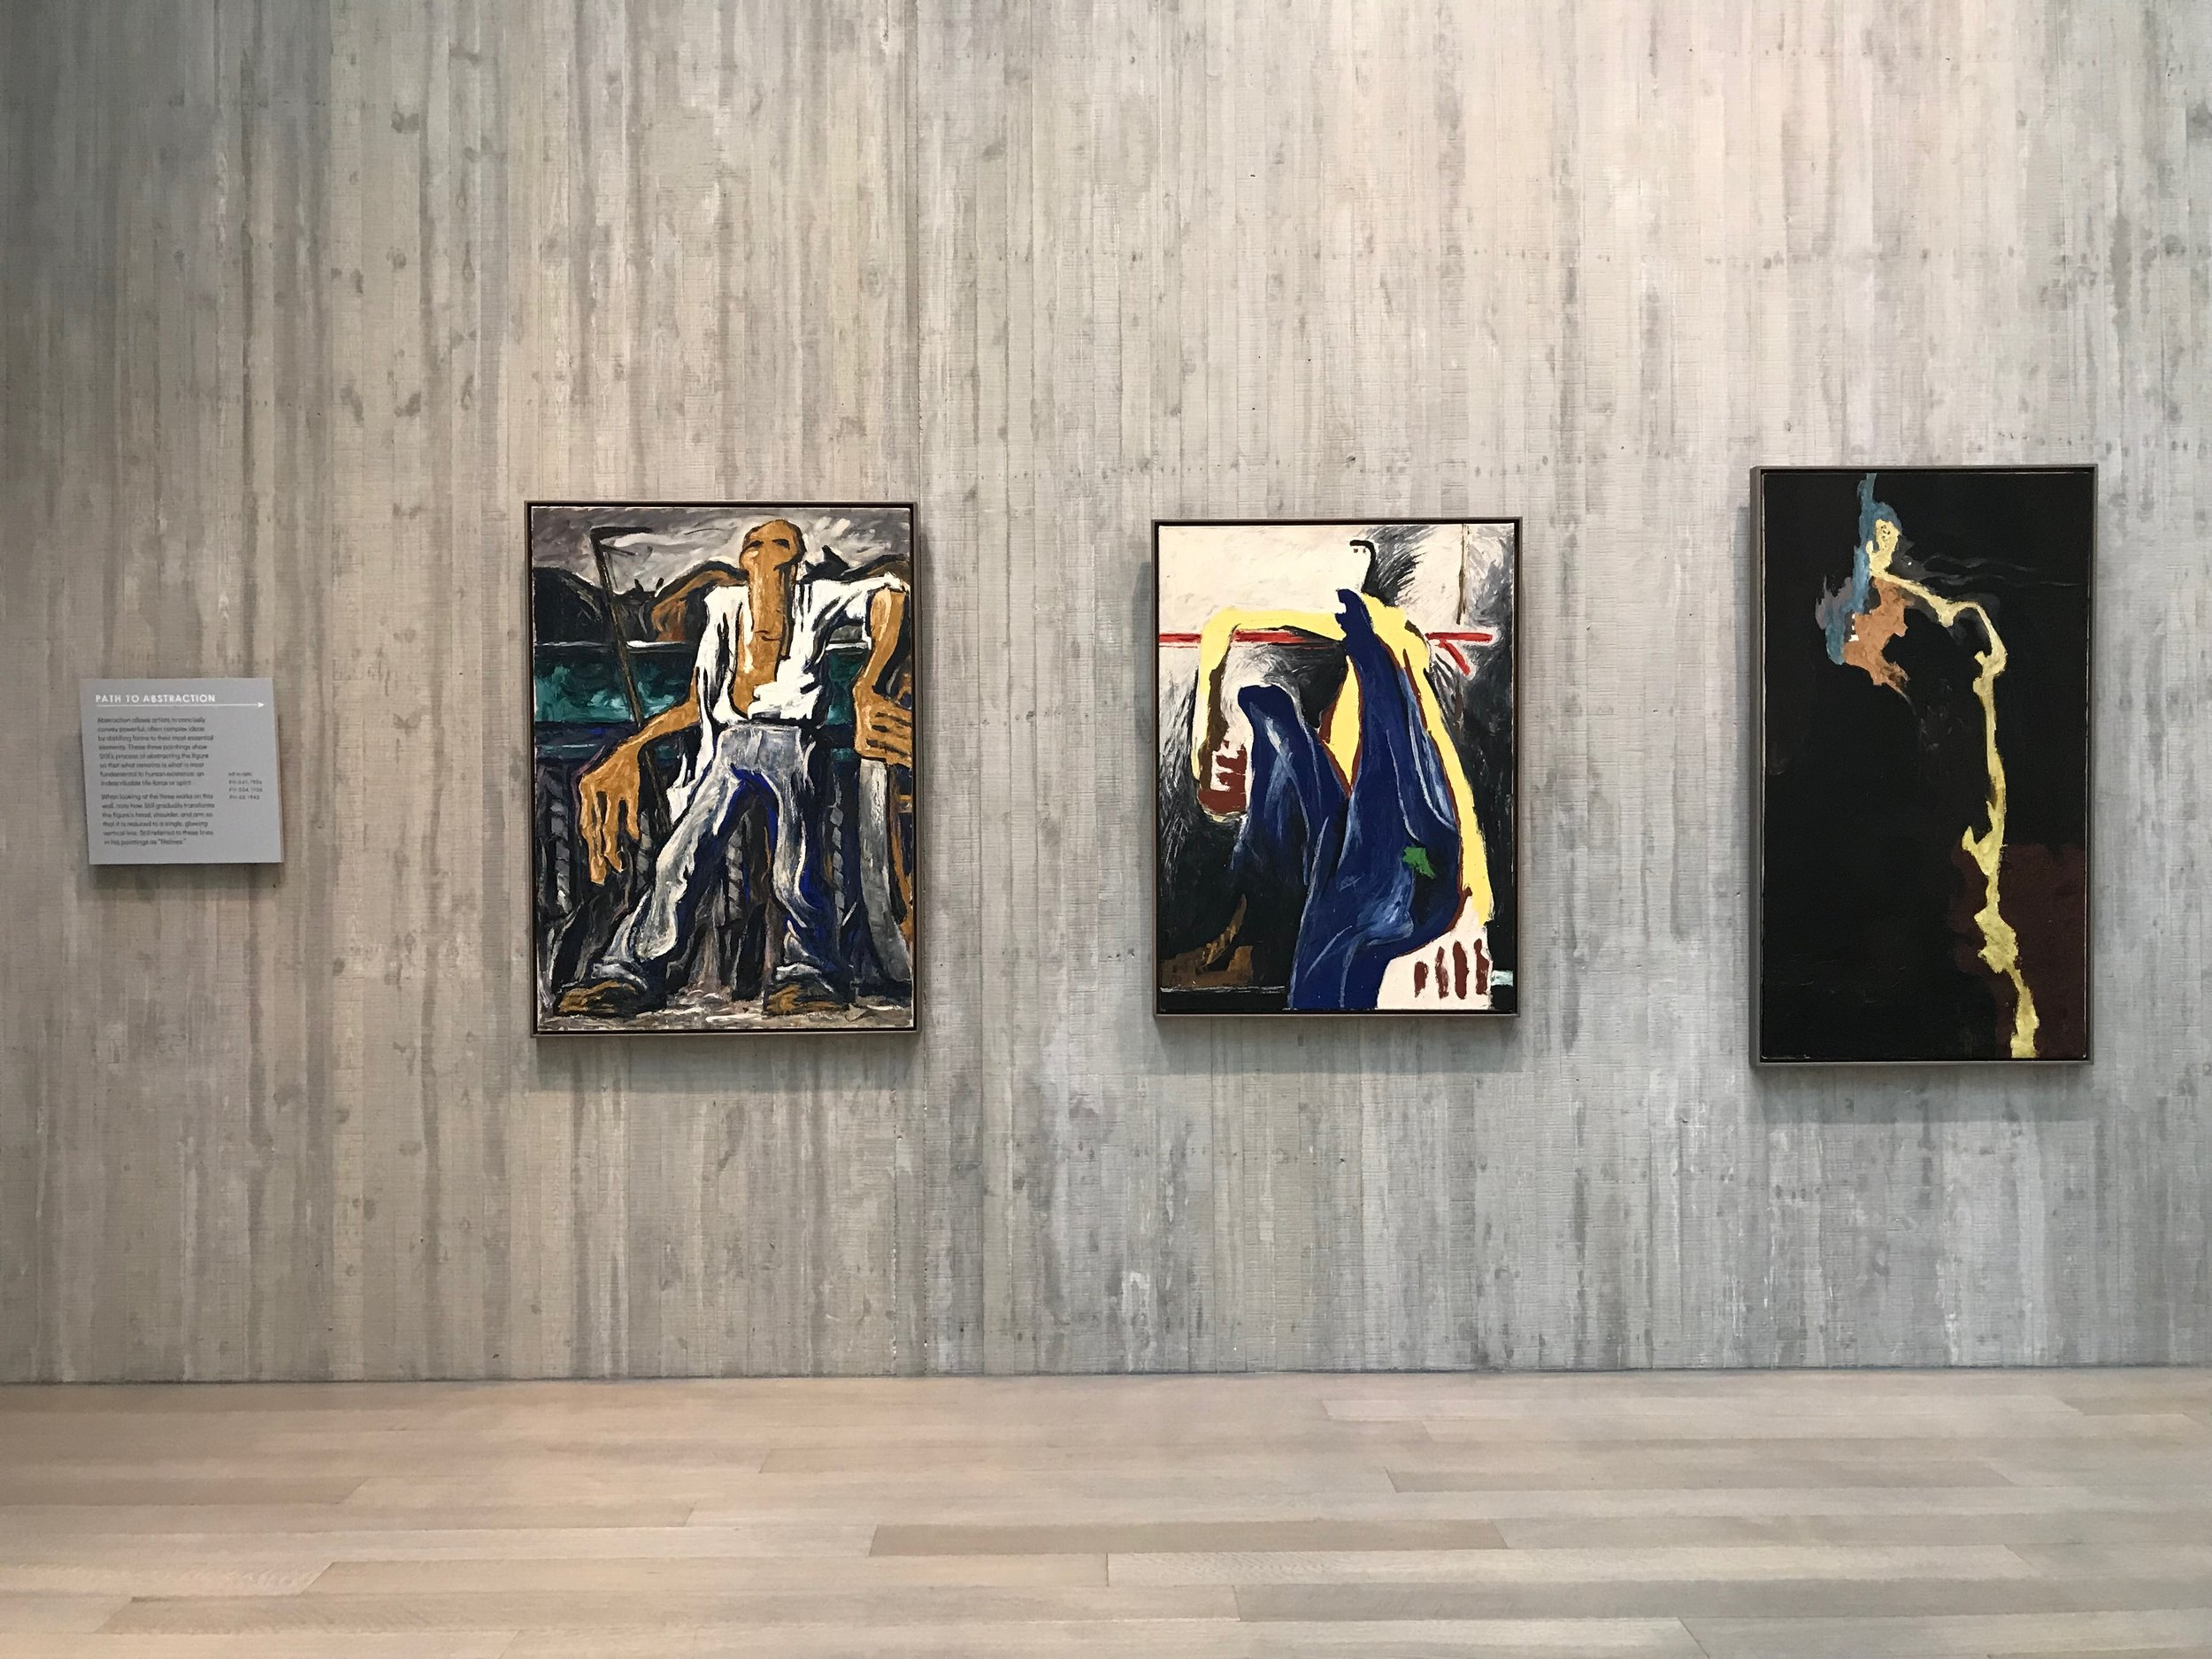 From object to abstraction in Clyfford Still's paintings